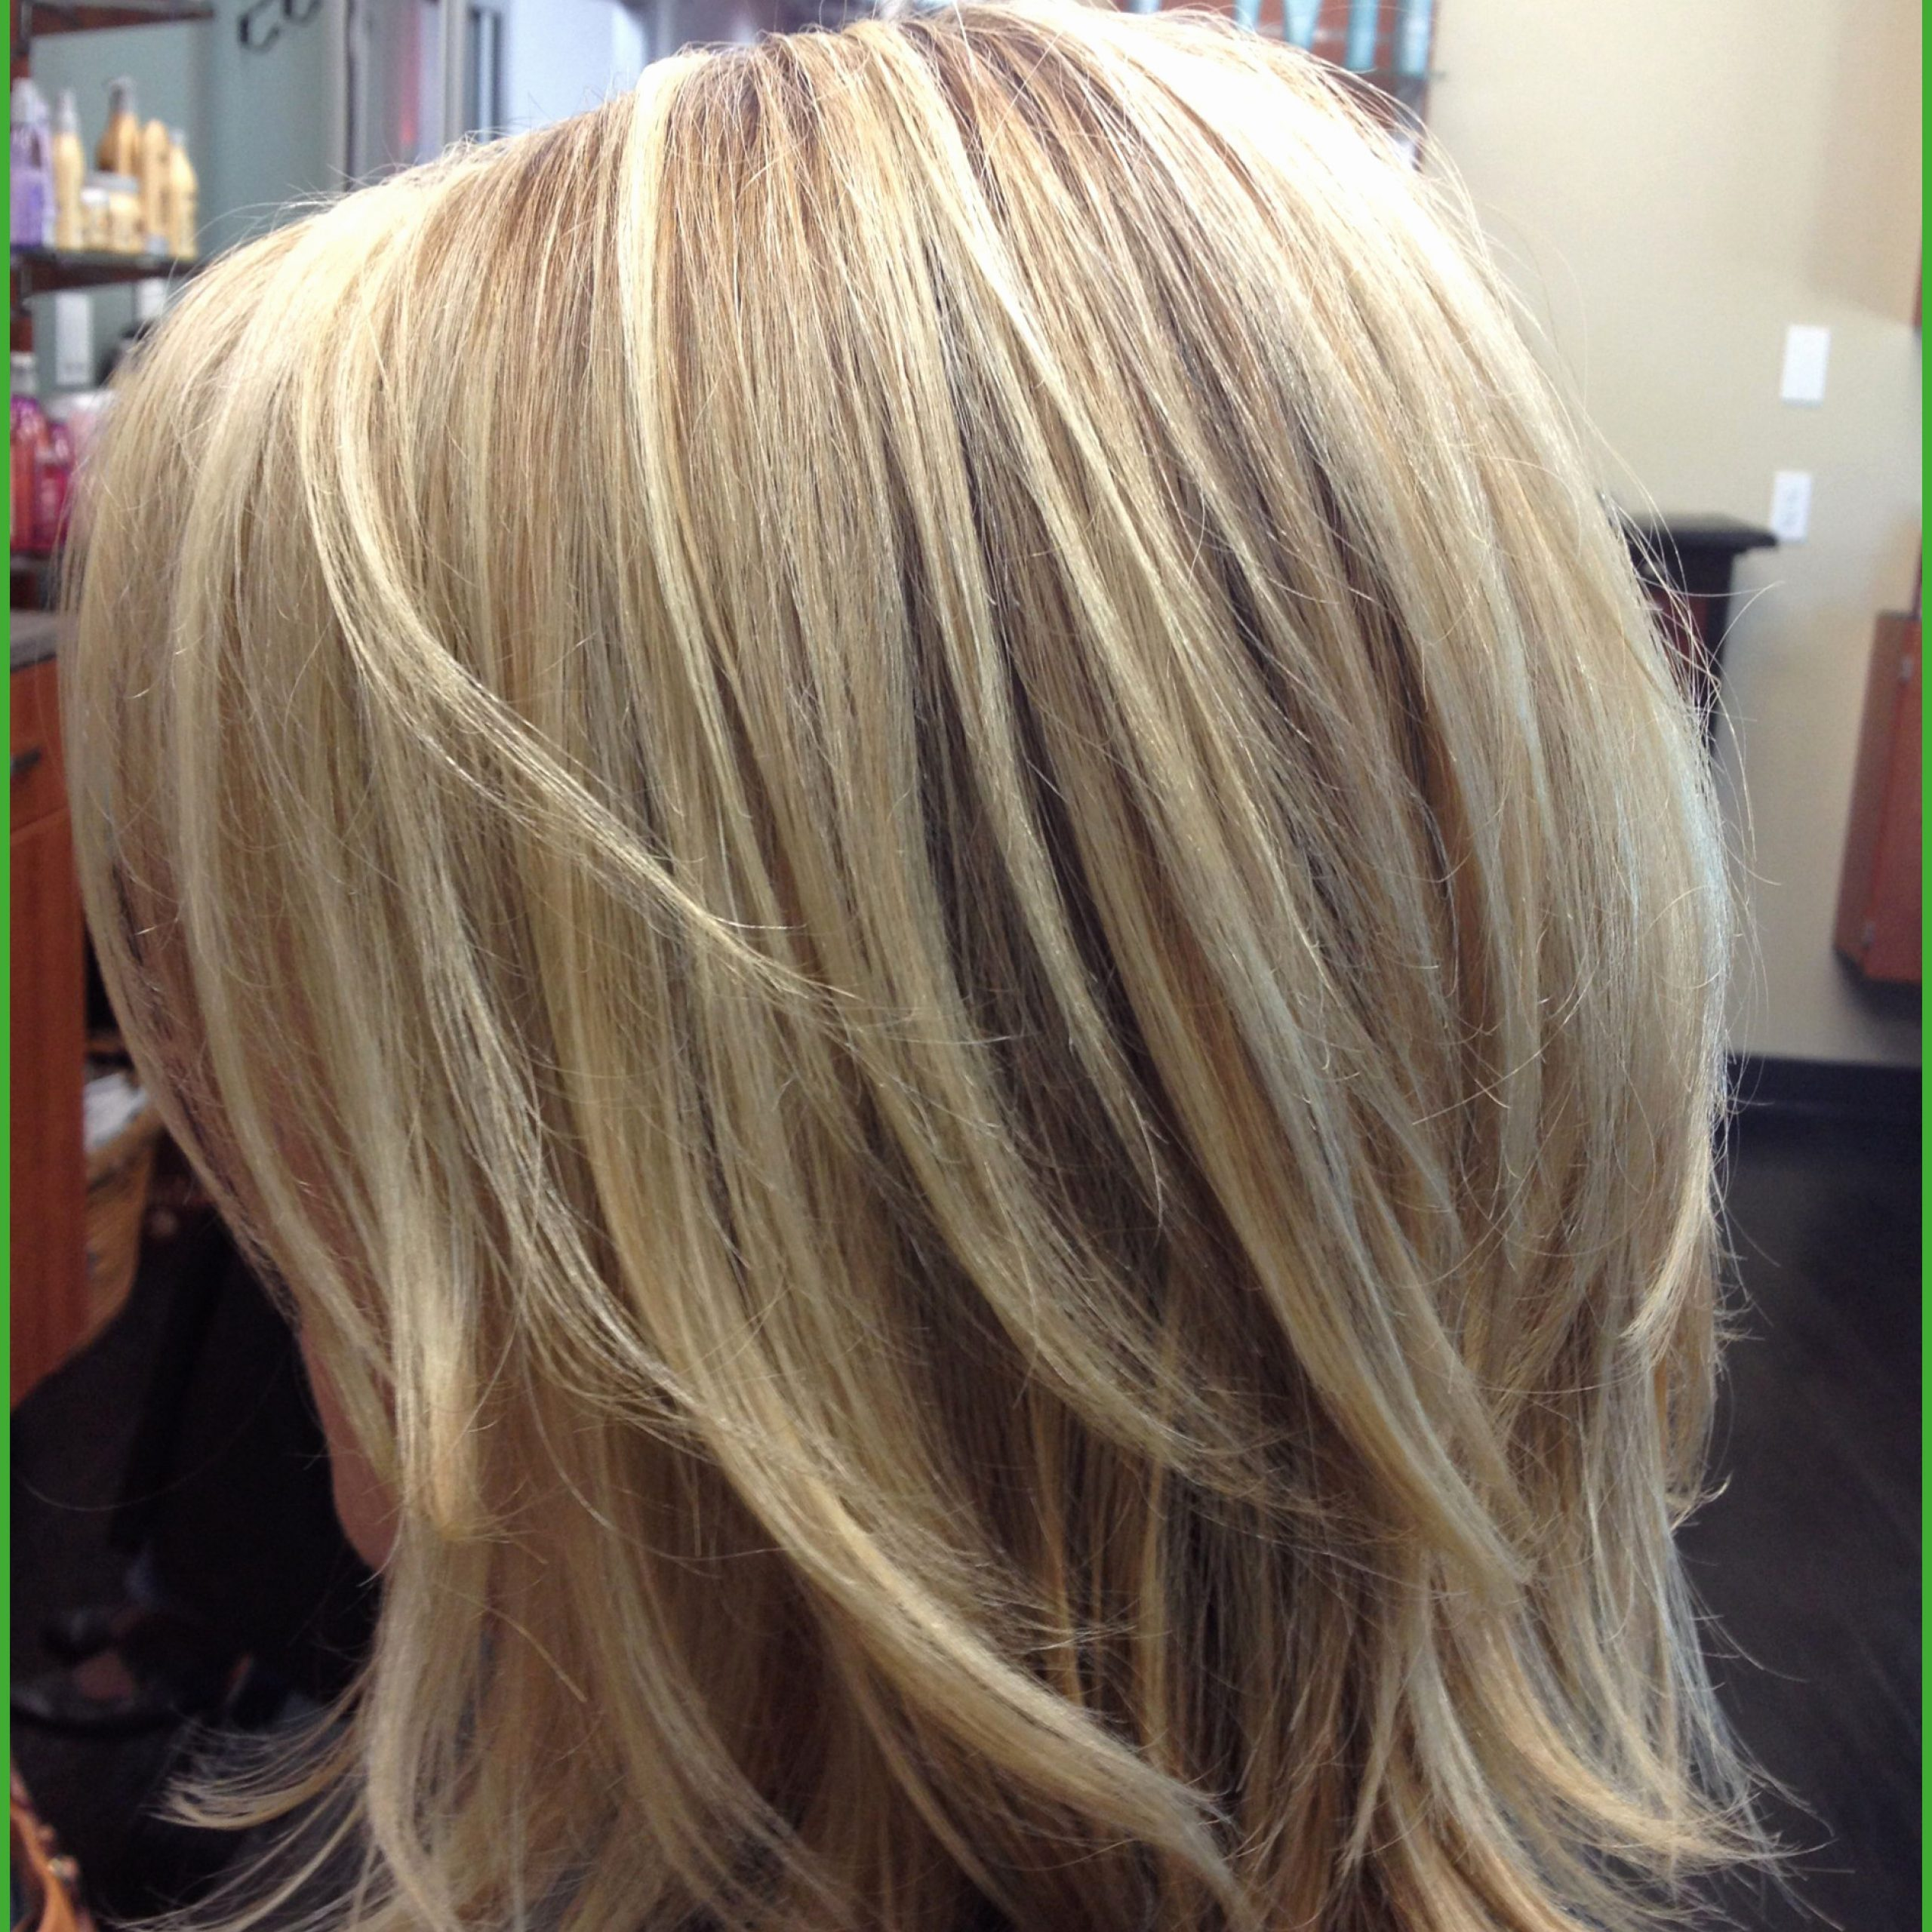 Hairstyles : Choppy Layers Medium Hair Stunning Choppy Short With Regard To Current Medium Blunt Haircuts With Added Choppy Layers (View 8 of 20)